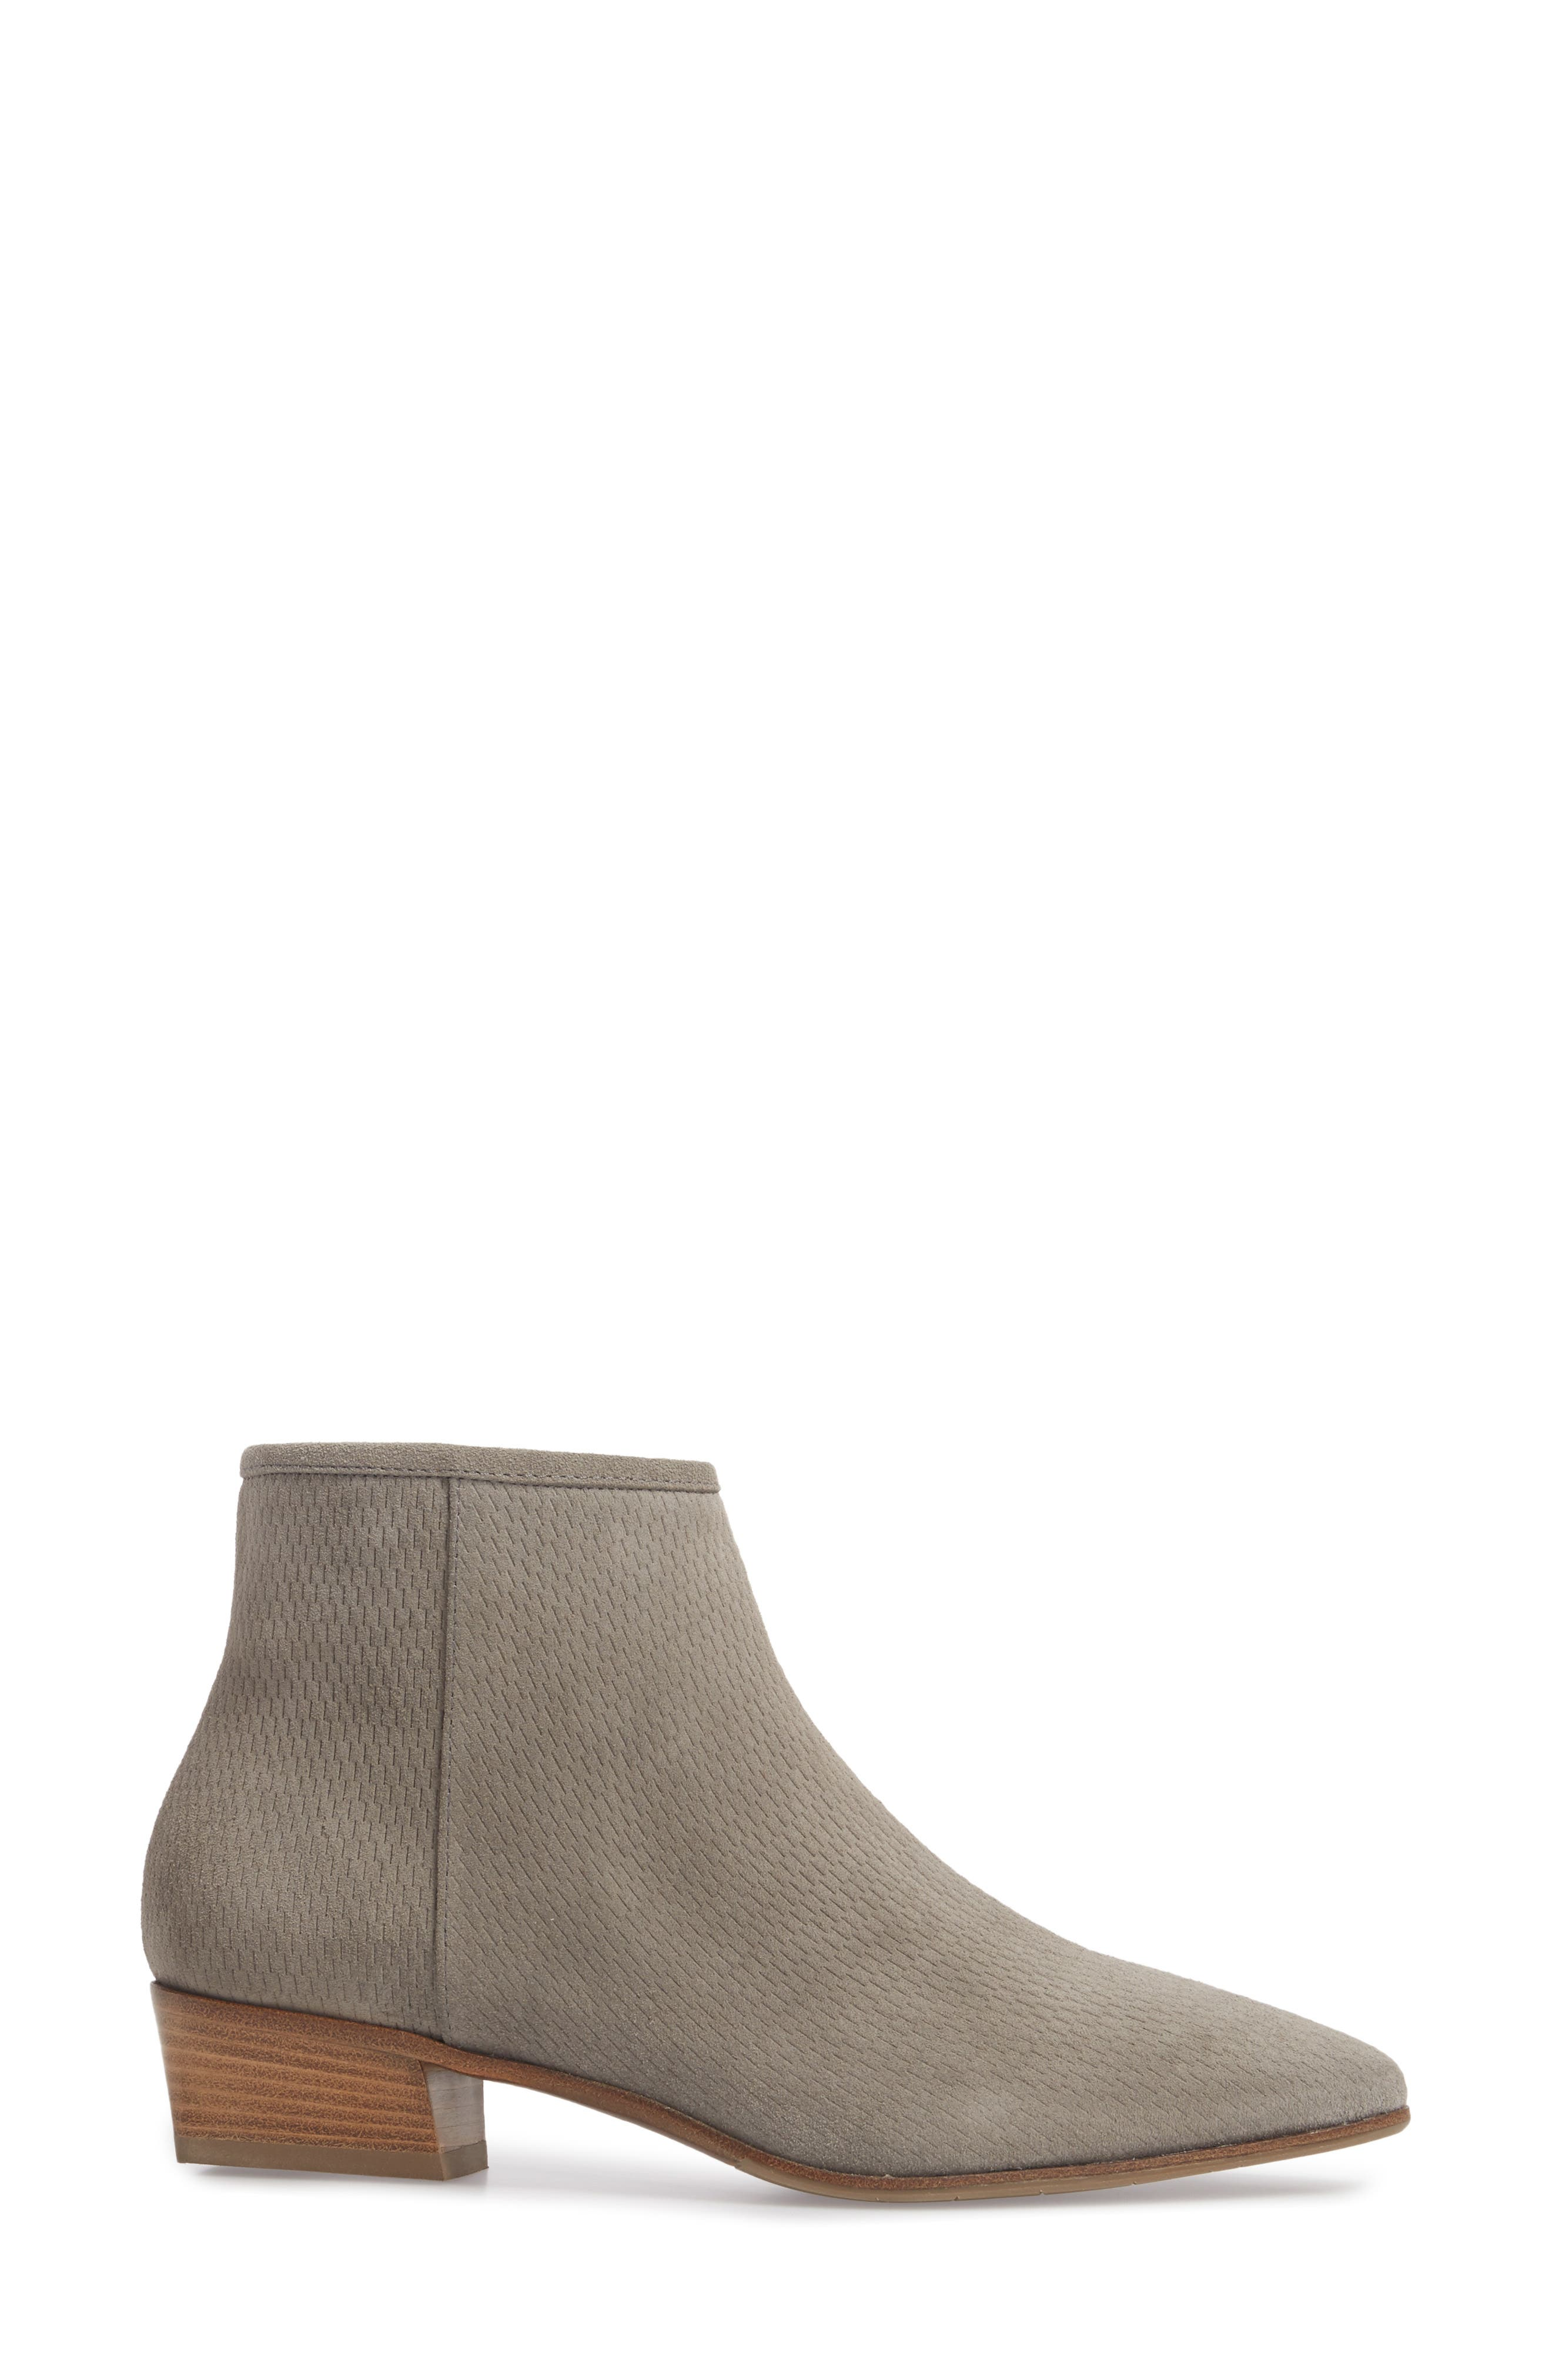 Fire Embossed Bootie,                             Alternate thumbnail 3, color,                             020